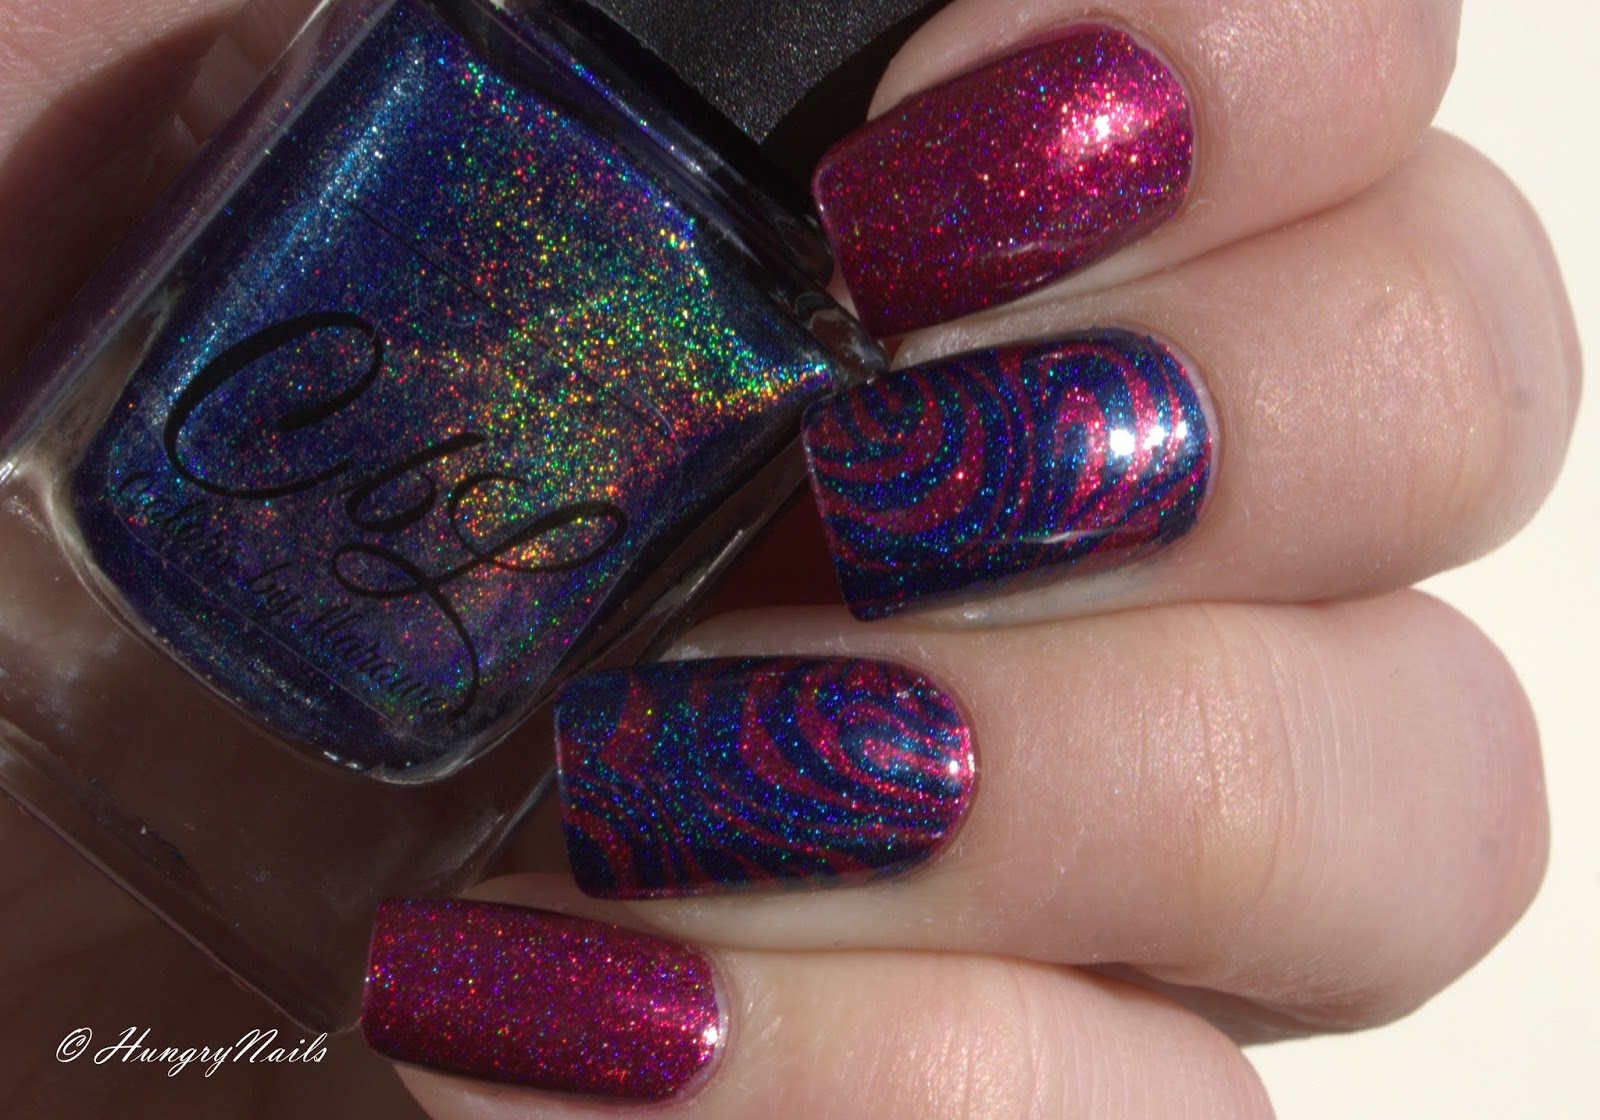 http://hungrynails.blogspot.de/2015/05/stamping-design-temptation-sexy-mother.html